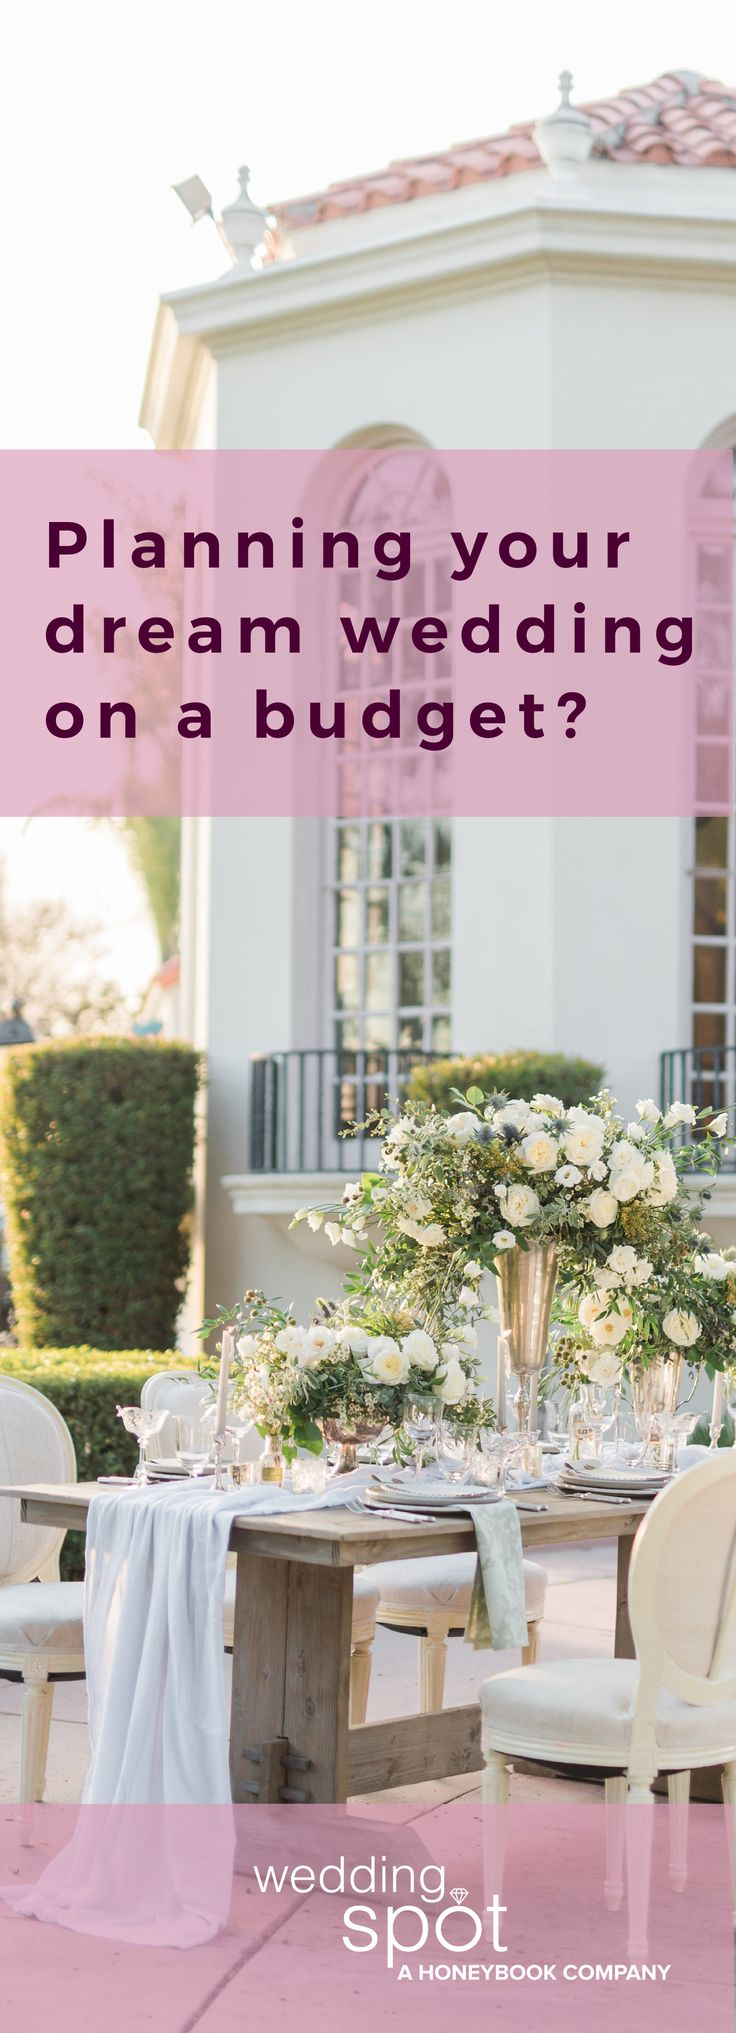 wedding venues on budget in california%0A Search  price  and compare wedding venues in your area  Wedding Spot is the